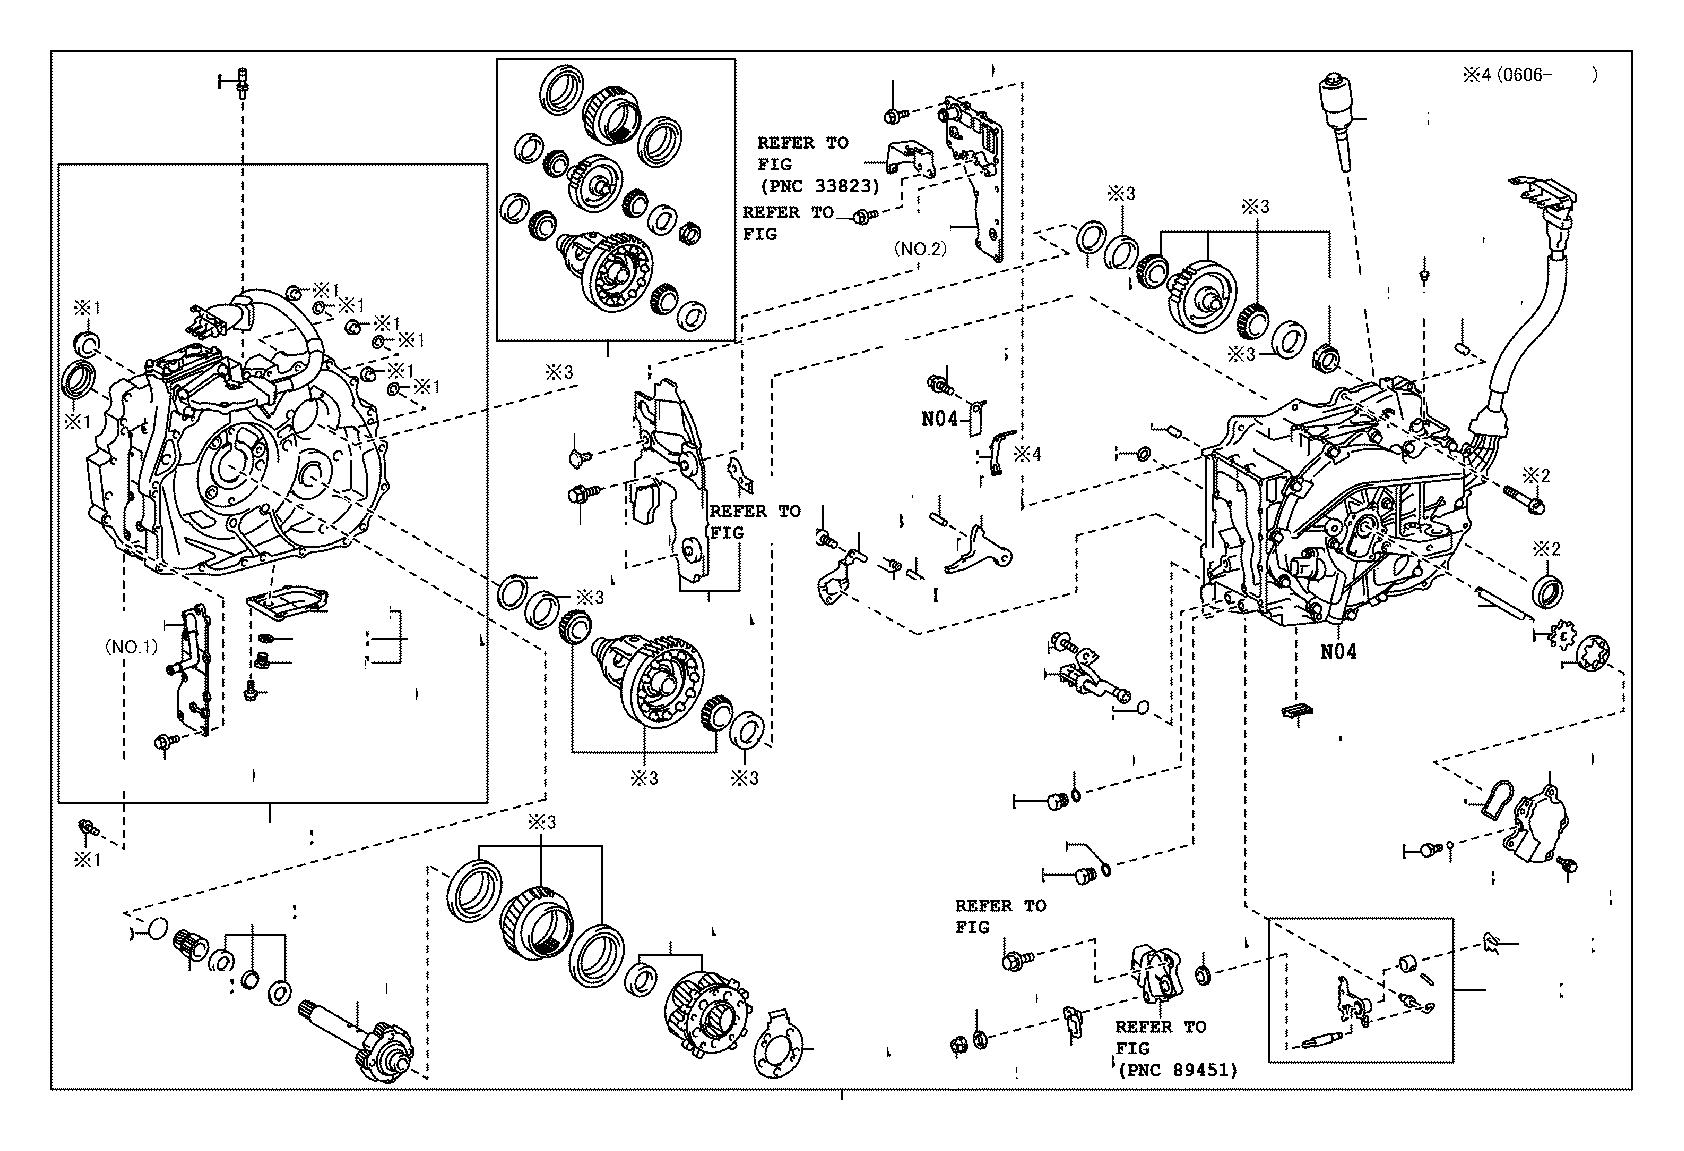 Toyota Highlander Generator Assembly Hybrid Vehicle